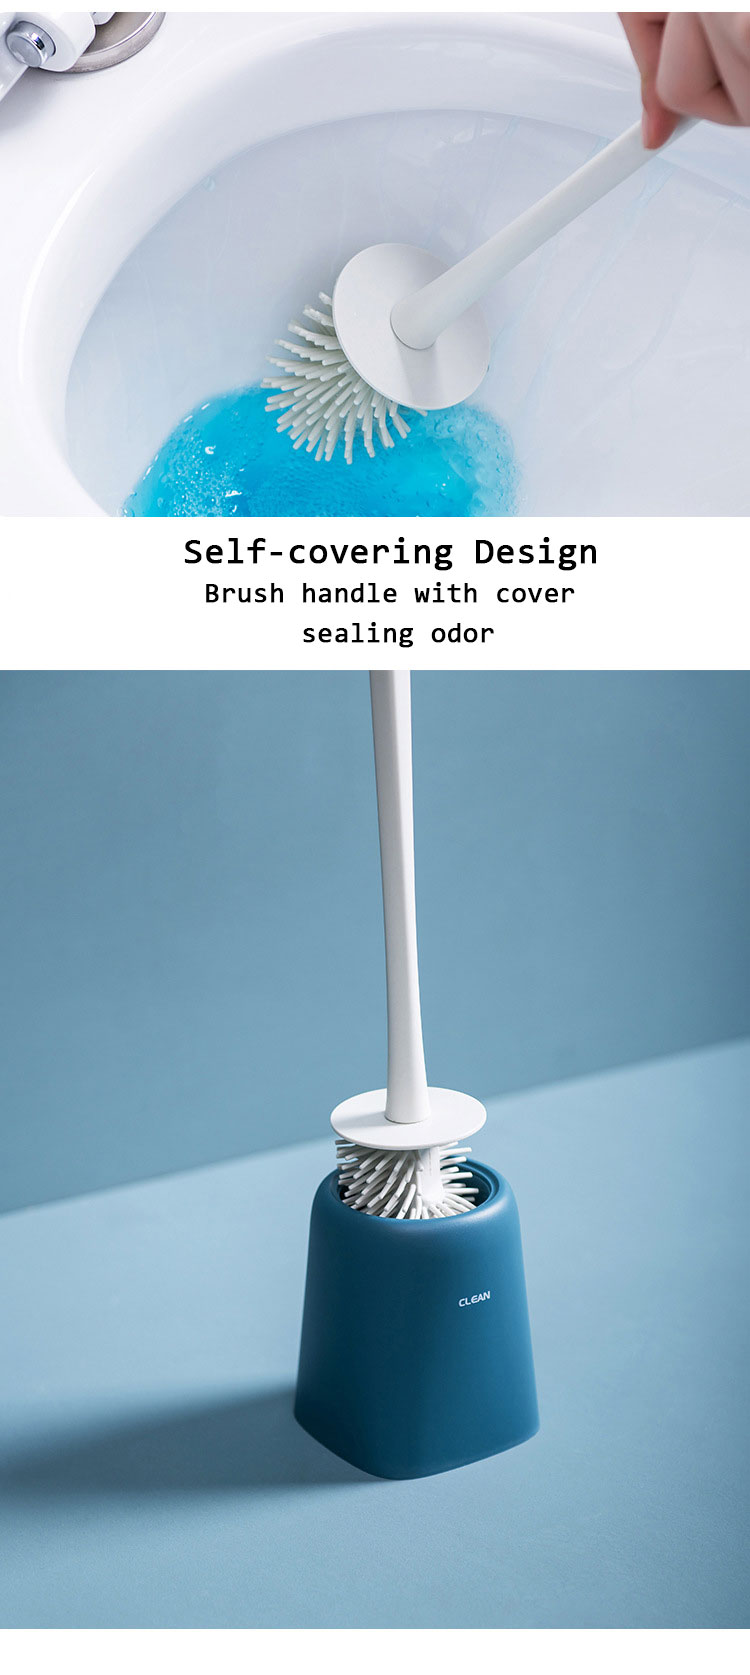 KCASA Nordic Cornerless Toilet Cleaning Brush With Base TPR Soft Brush Head Air Dried Automatically